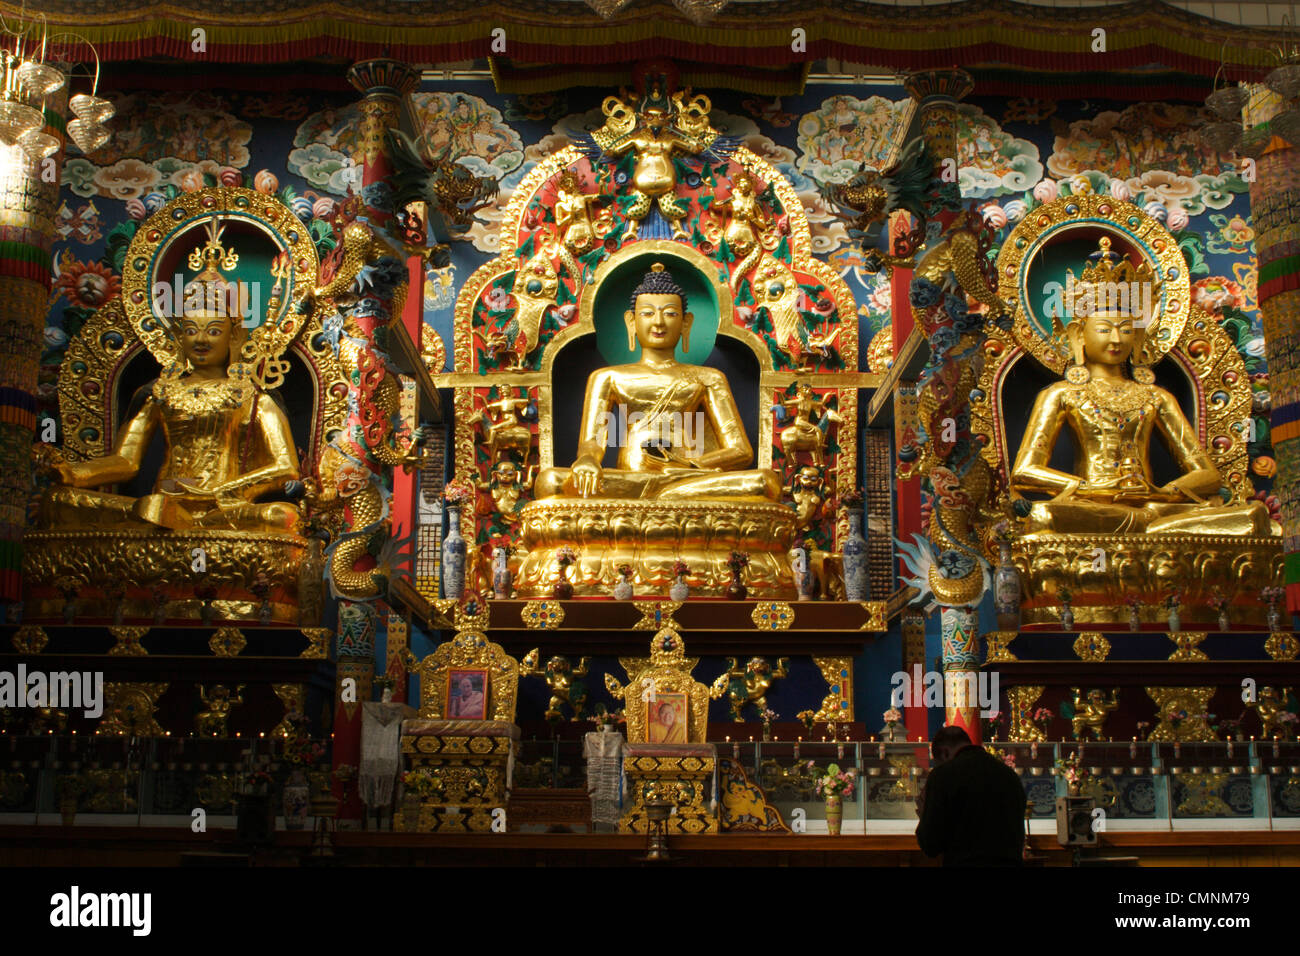 Monk prays before the Golden Buddha statues in the Tibetan Golden Buddha Temple at Namdroling, Karnataka, India. - Stock Image